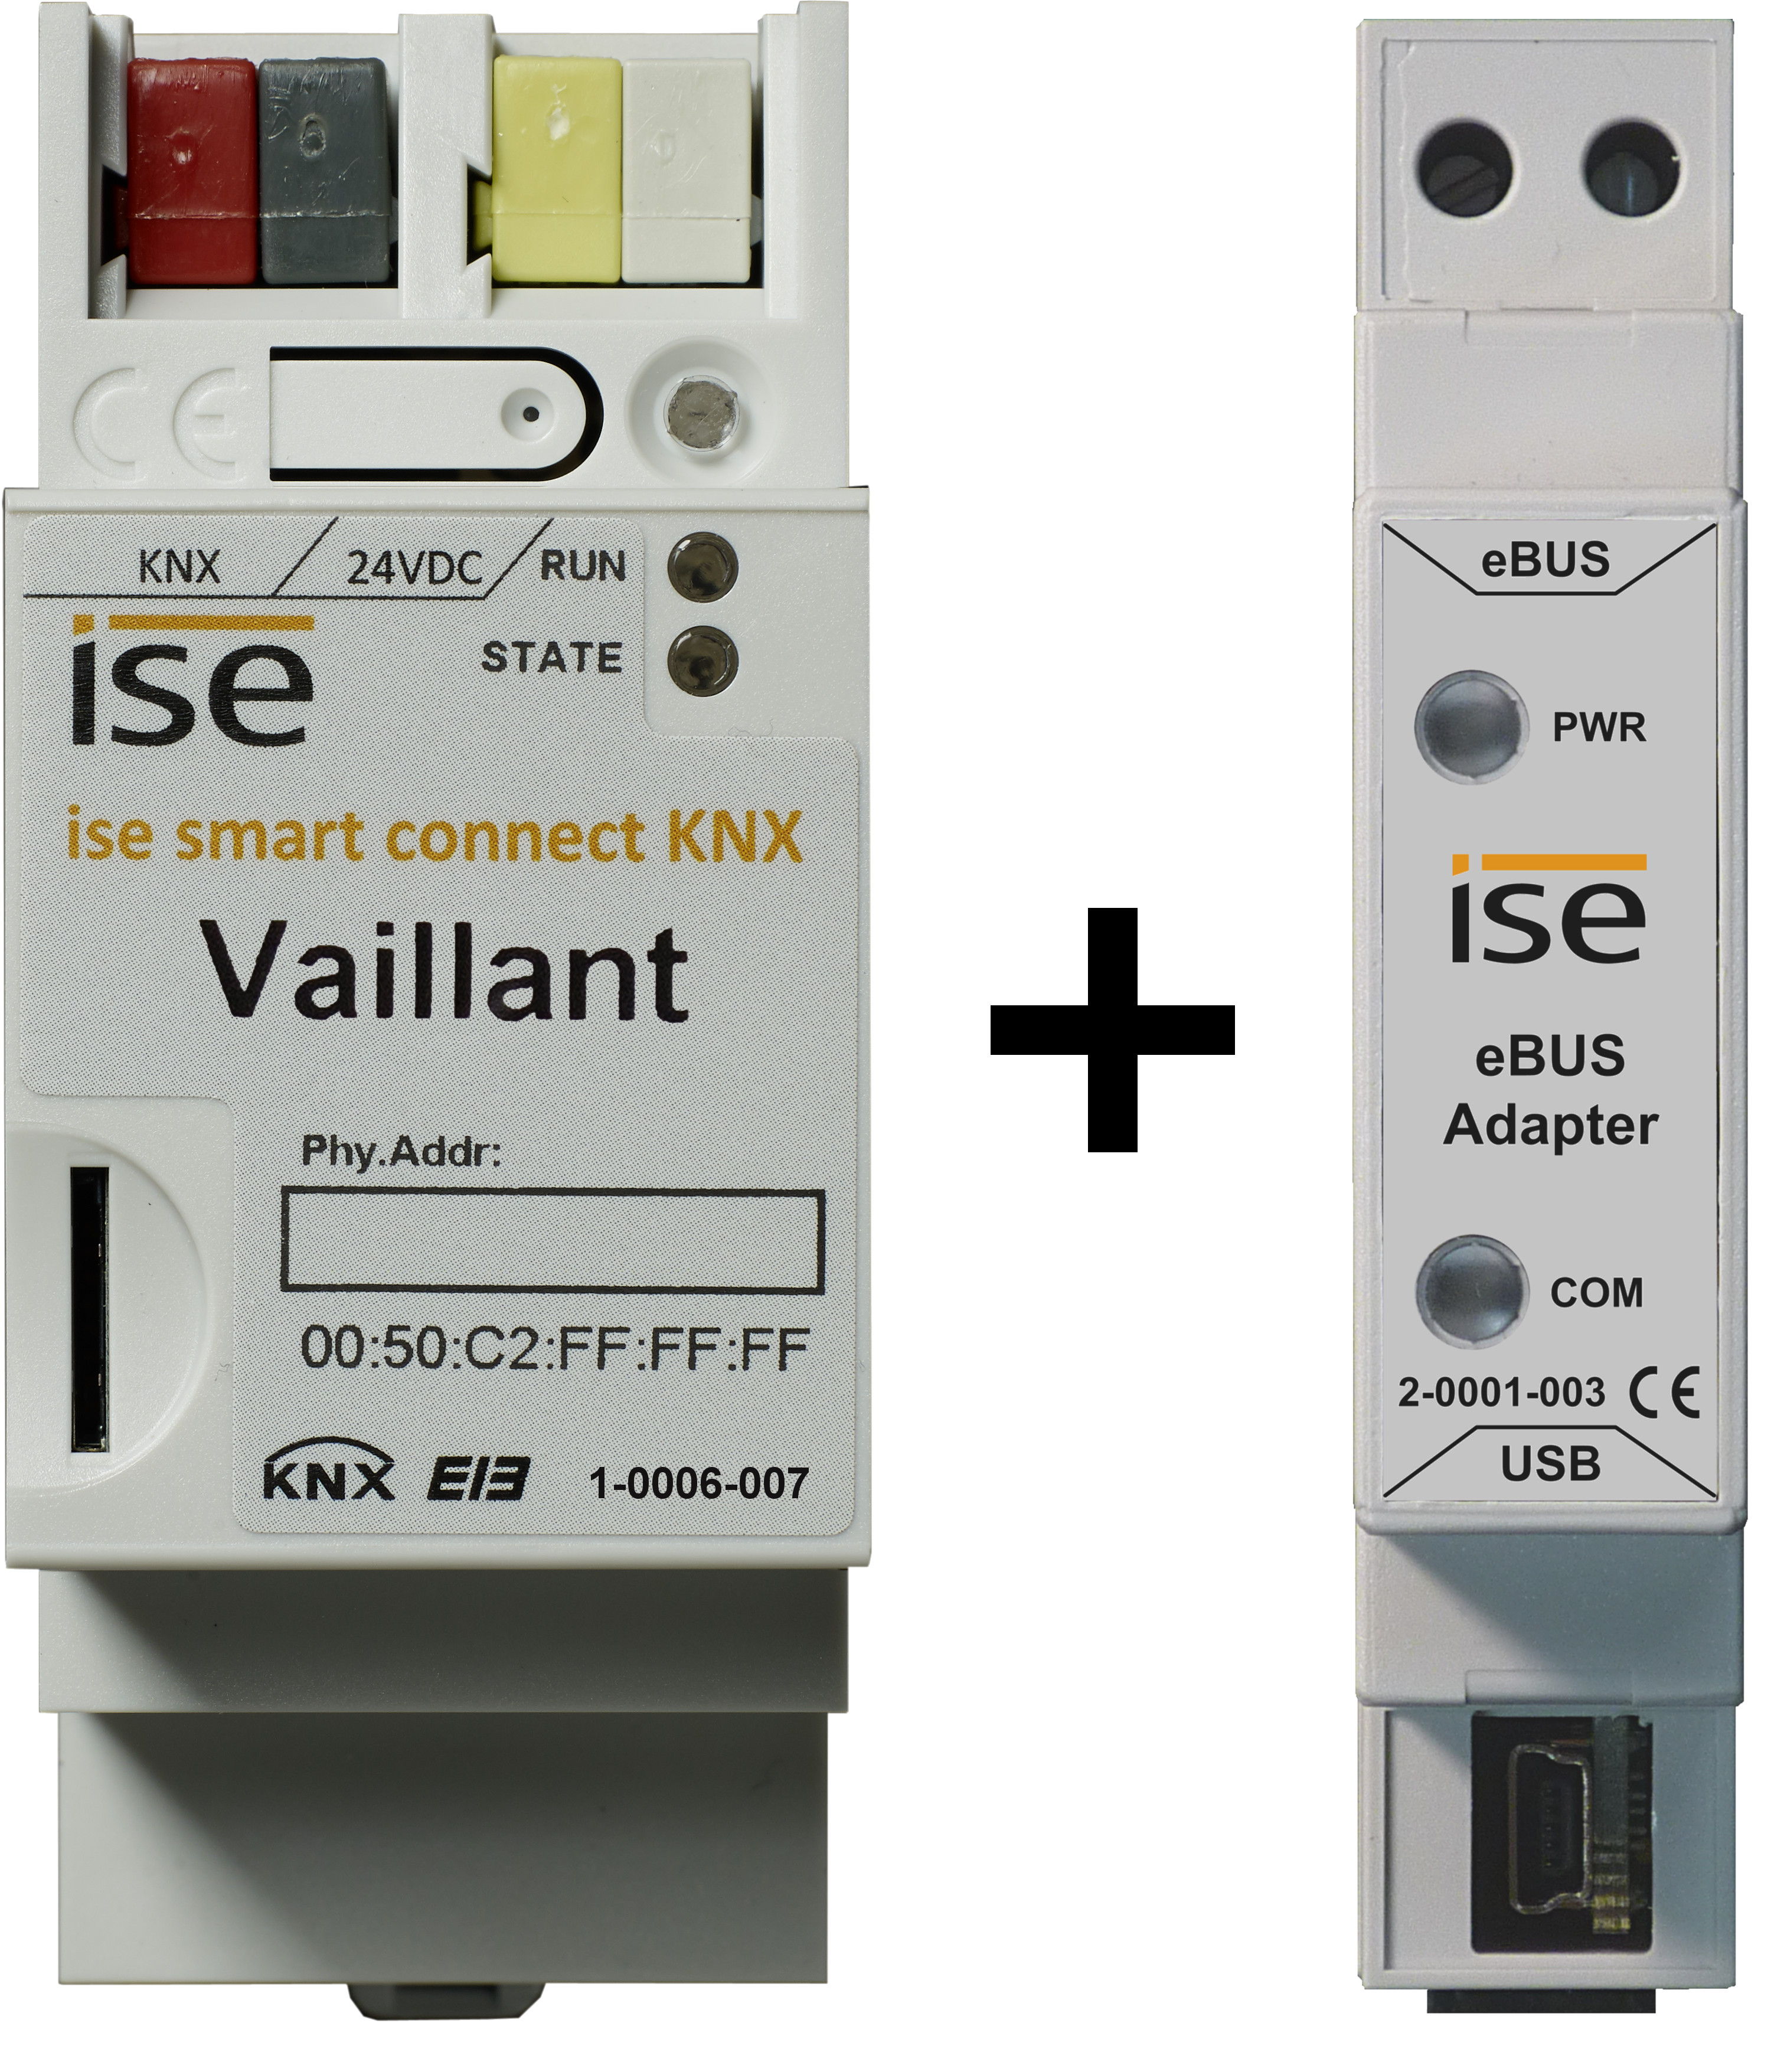 ISE smart connect KNX Vaillant ISE: S-0001-006